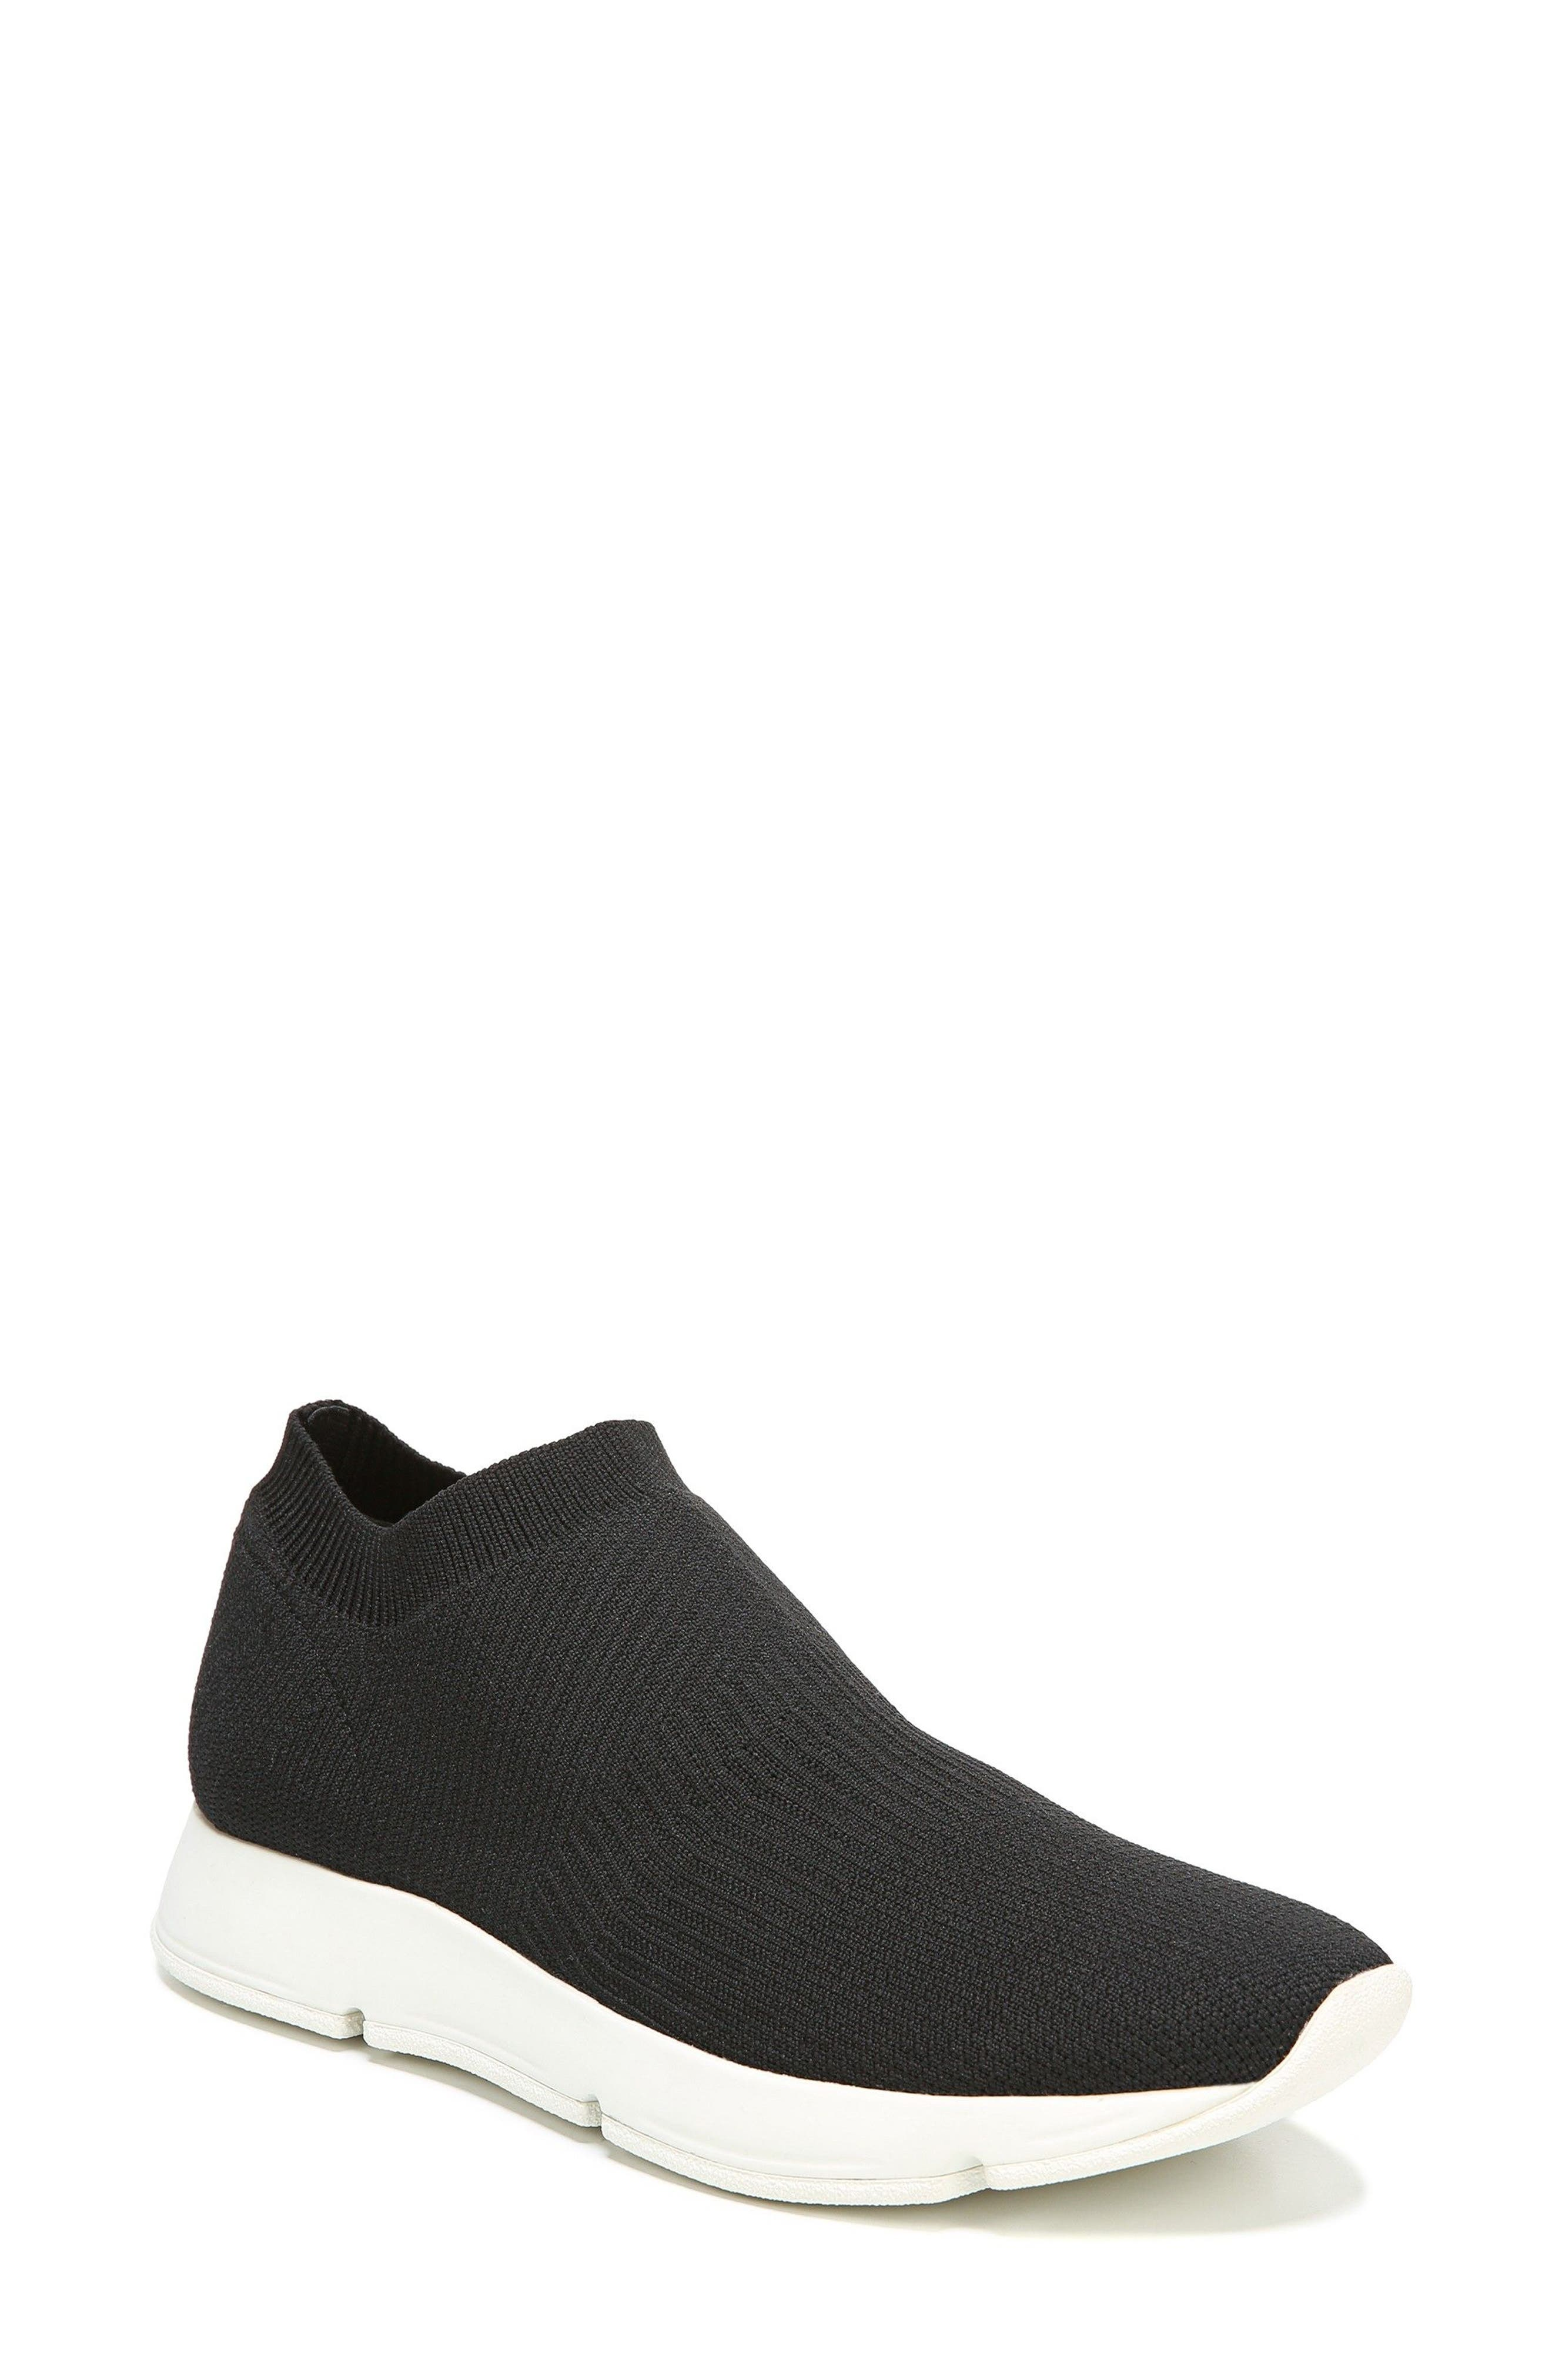 Theroux Slip-On Knit Sneaker,                             Main thumbnail 1, color,